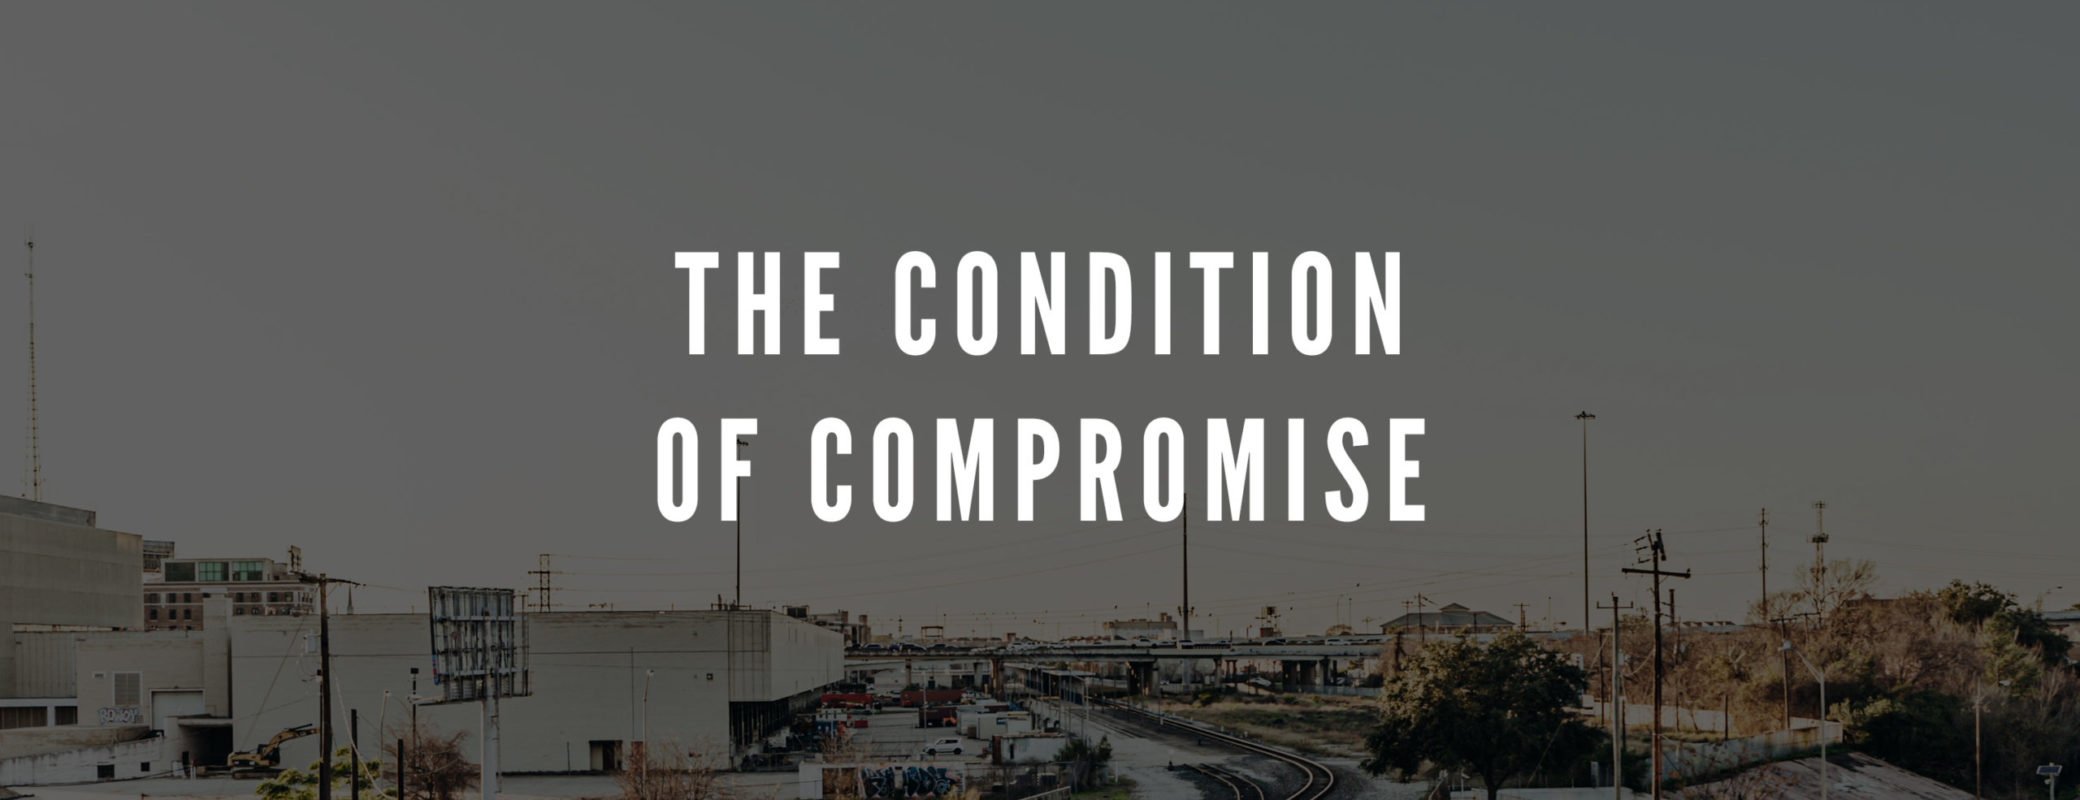 THE CONDITION OF COMPROMISE